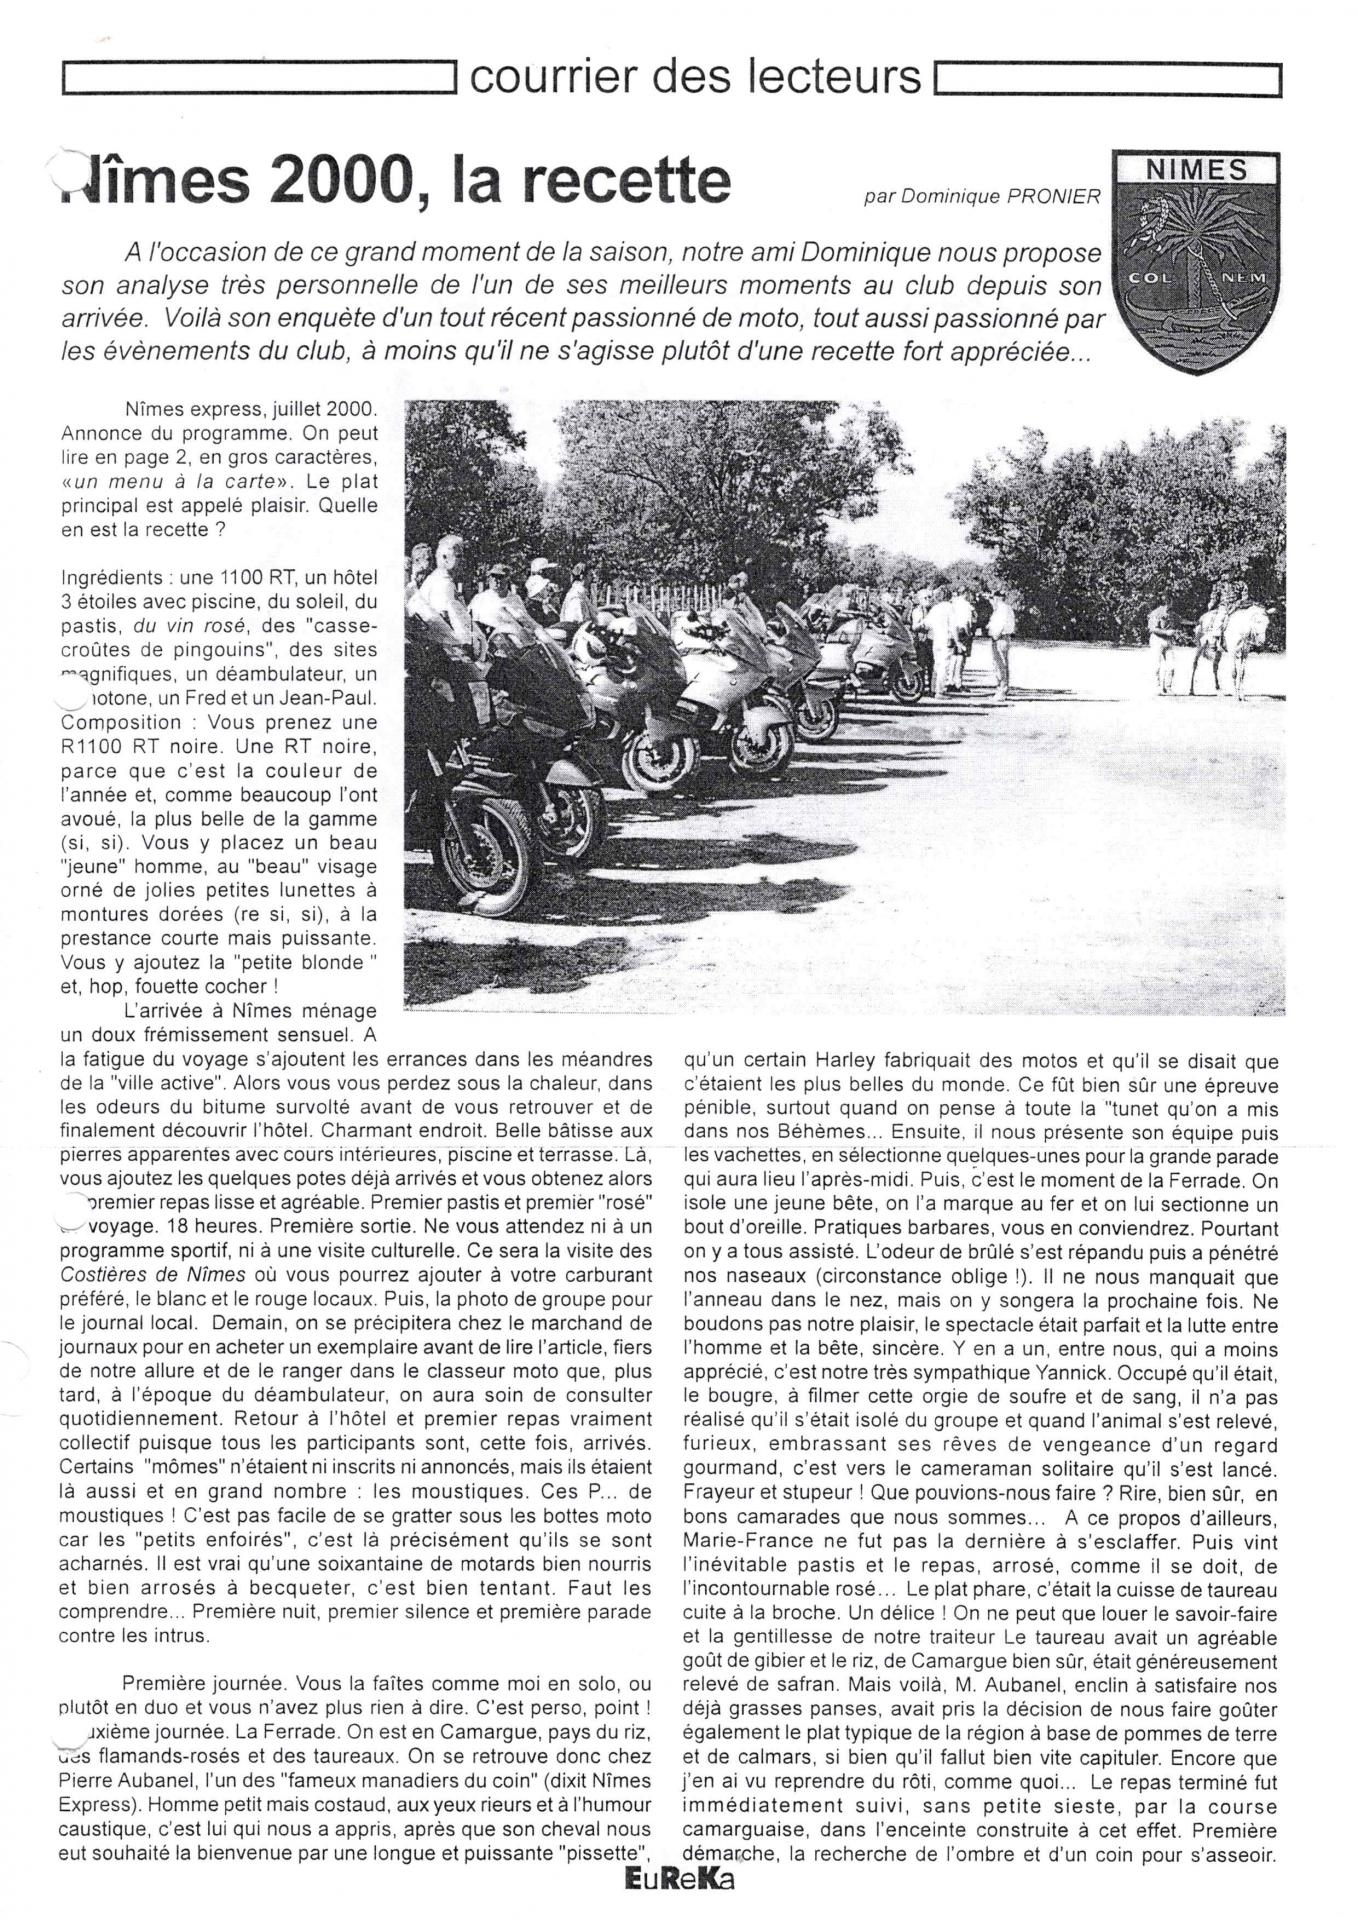 2000 09 nimes courrier 1